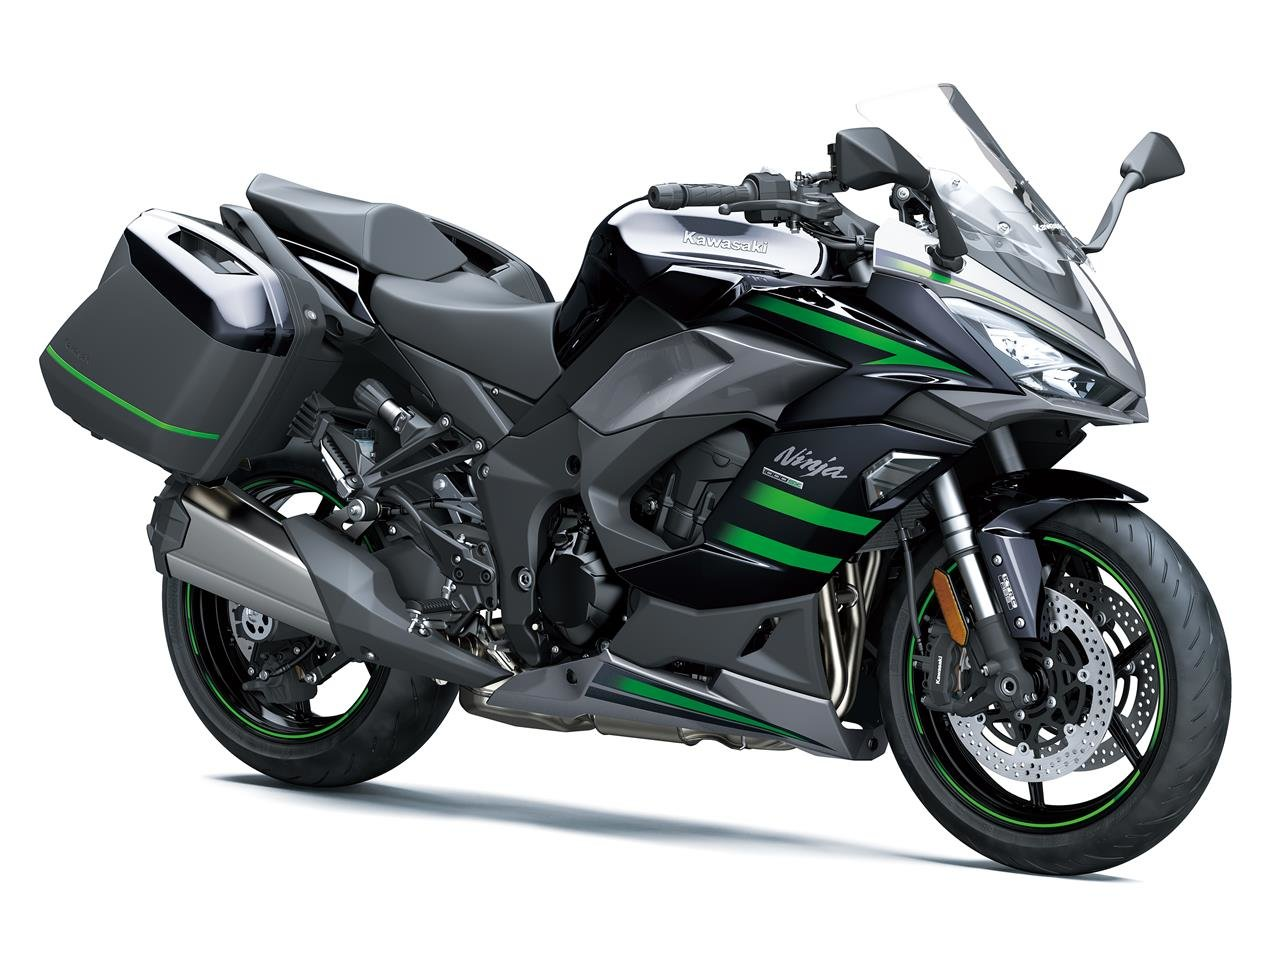 New 2020 Kawasaki Ninja 1000 SX SE Tourer**FREE DELIVERY** For Sale (picture 1 of 6)